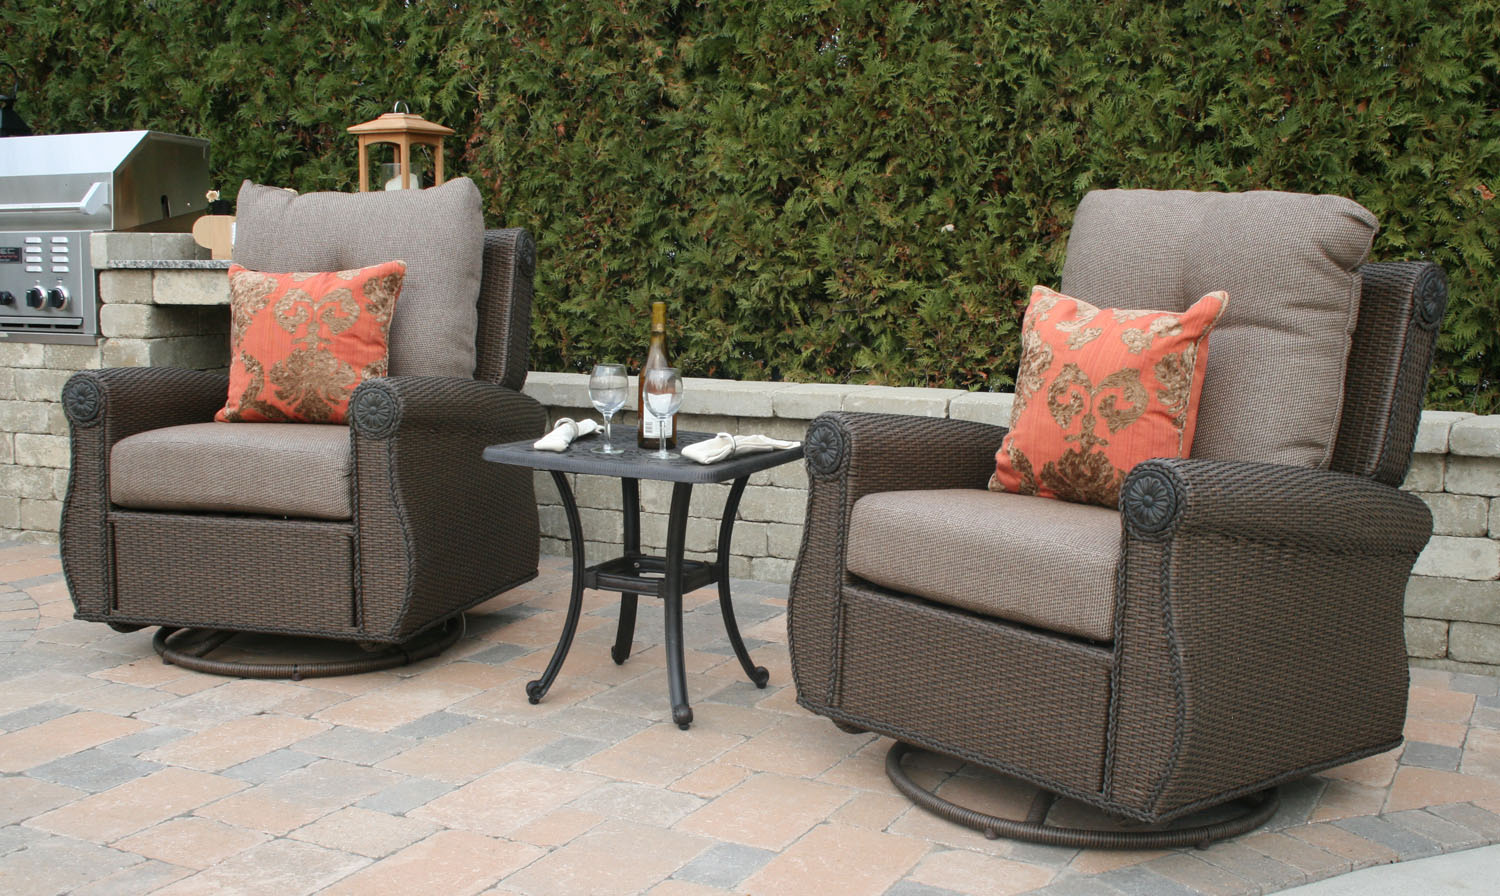 home today piece shipping set patio overstock grey free garden corvus product bellanger wicker furniture